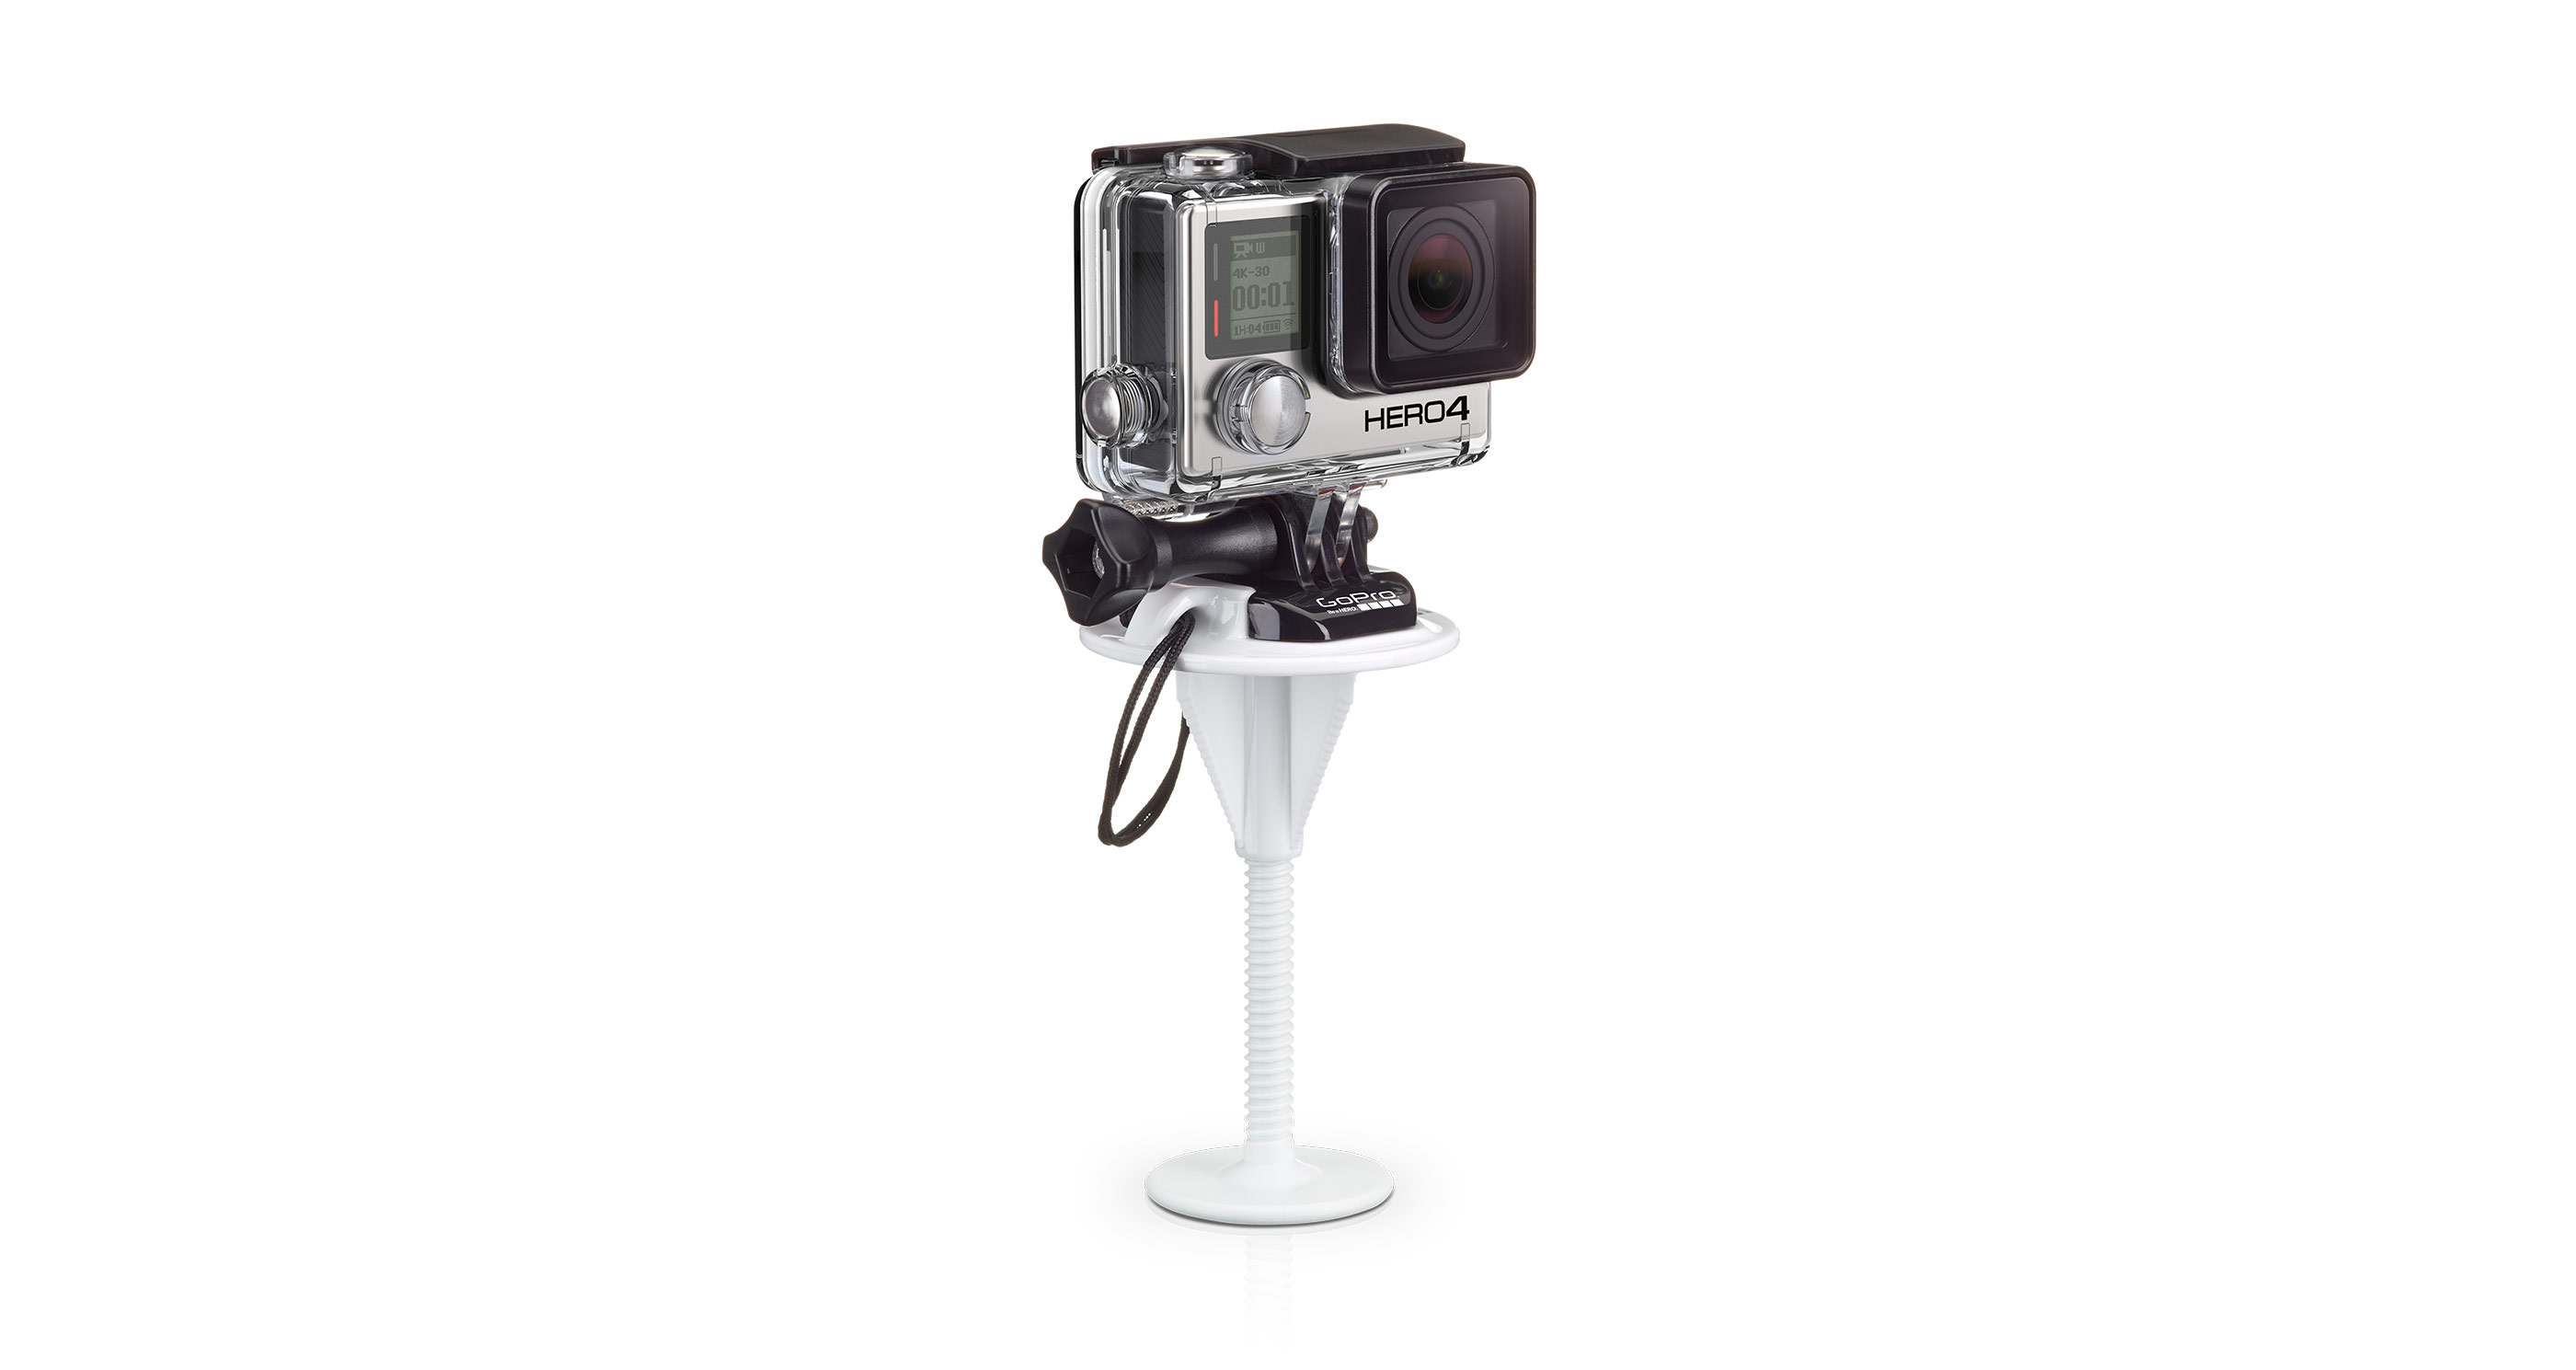 Gopro Buying Guide How To Find The Best Cameras Mounts And Accessories